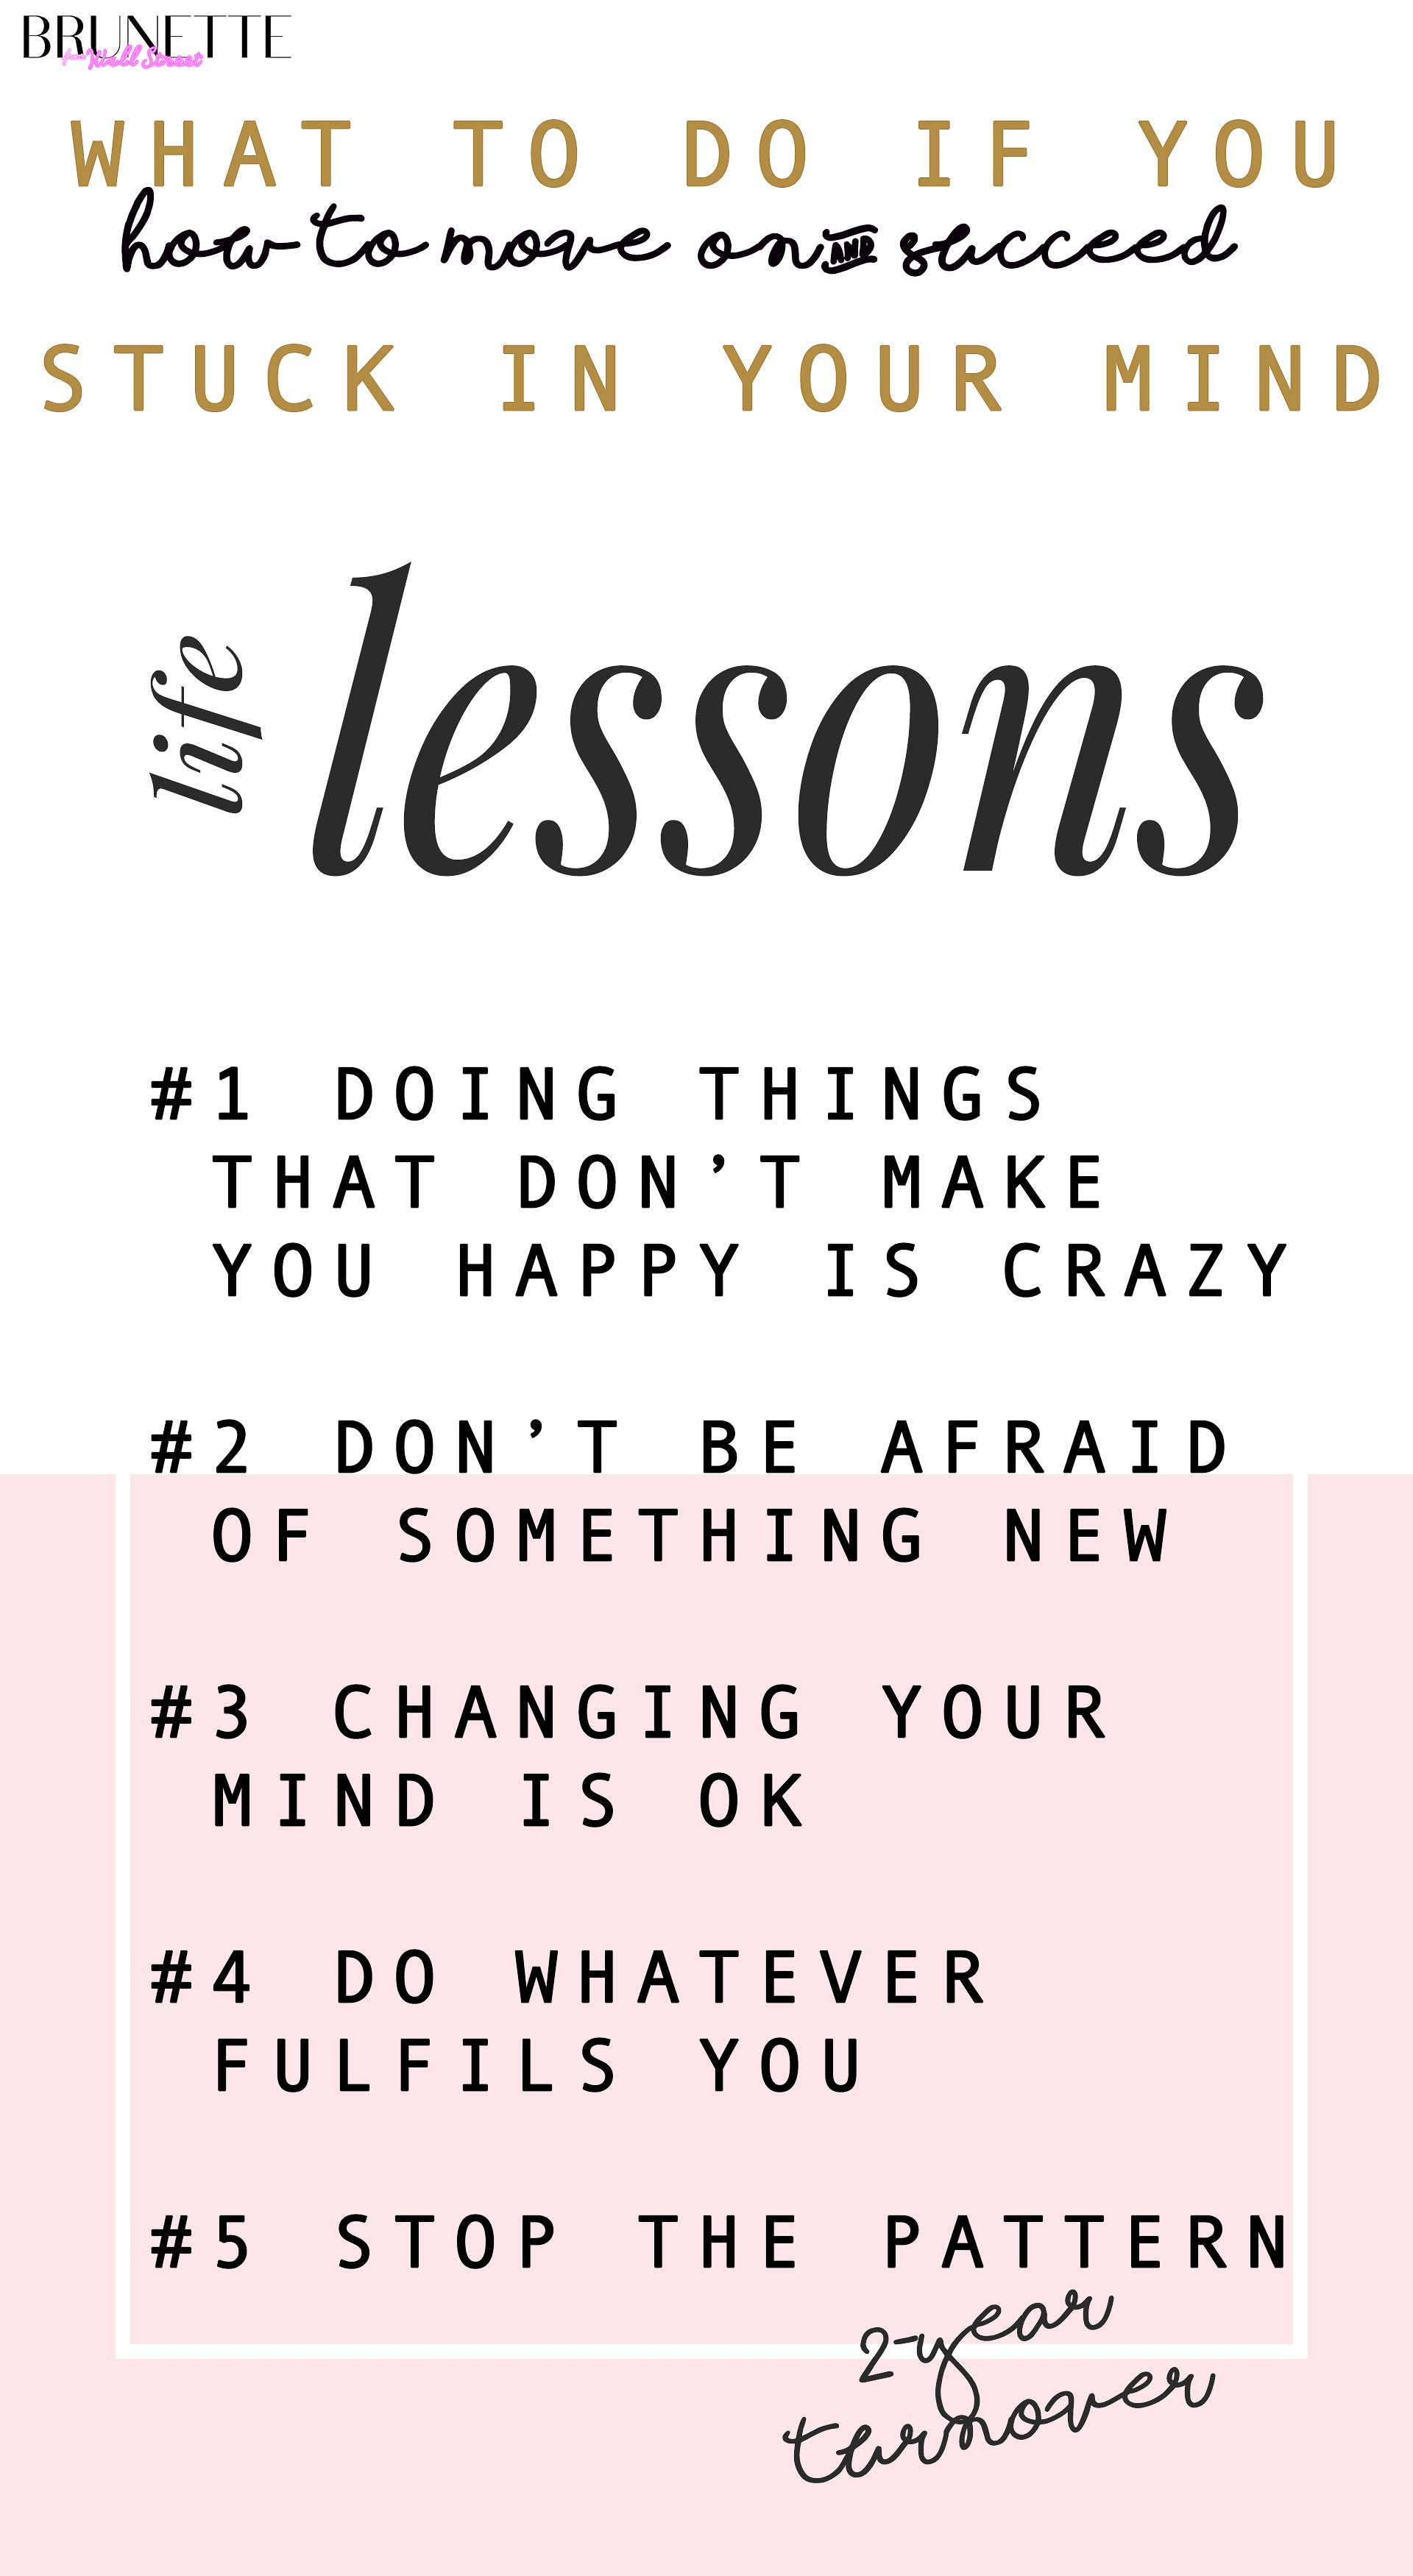 life lessons you need to learn if you feel being stuck